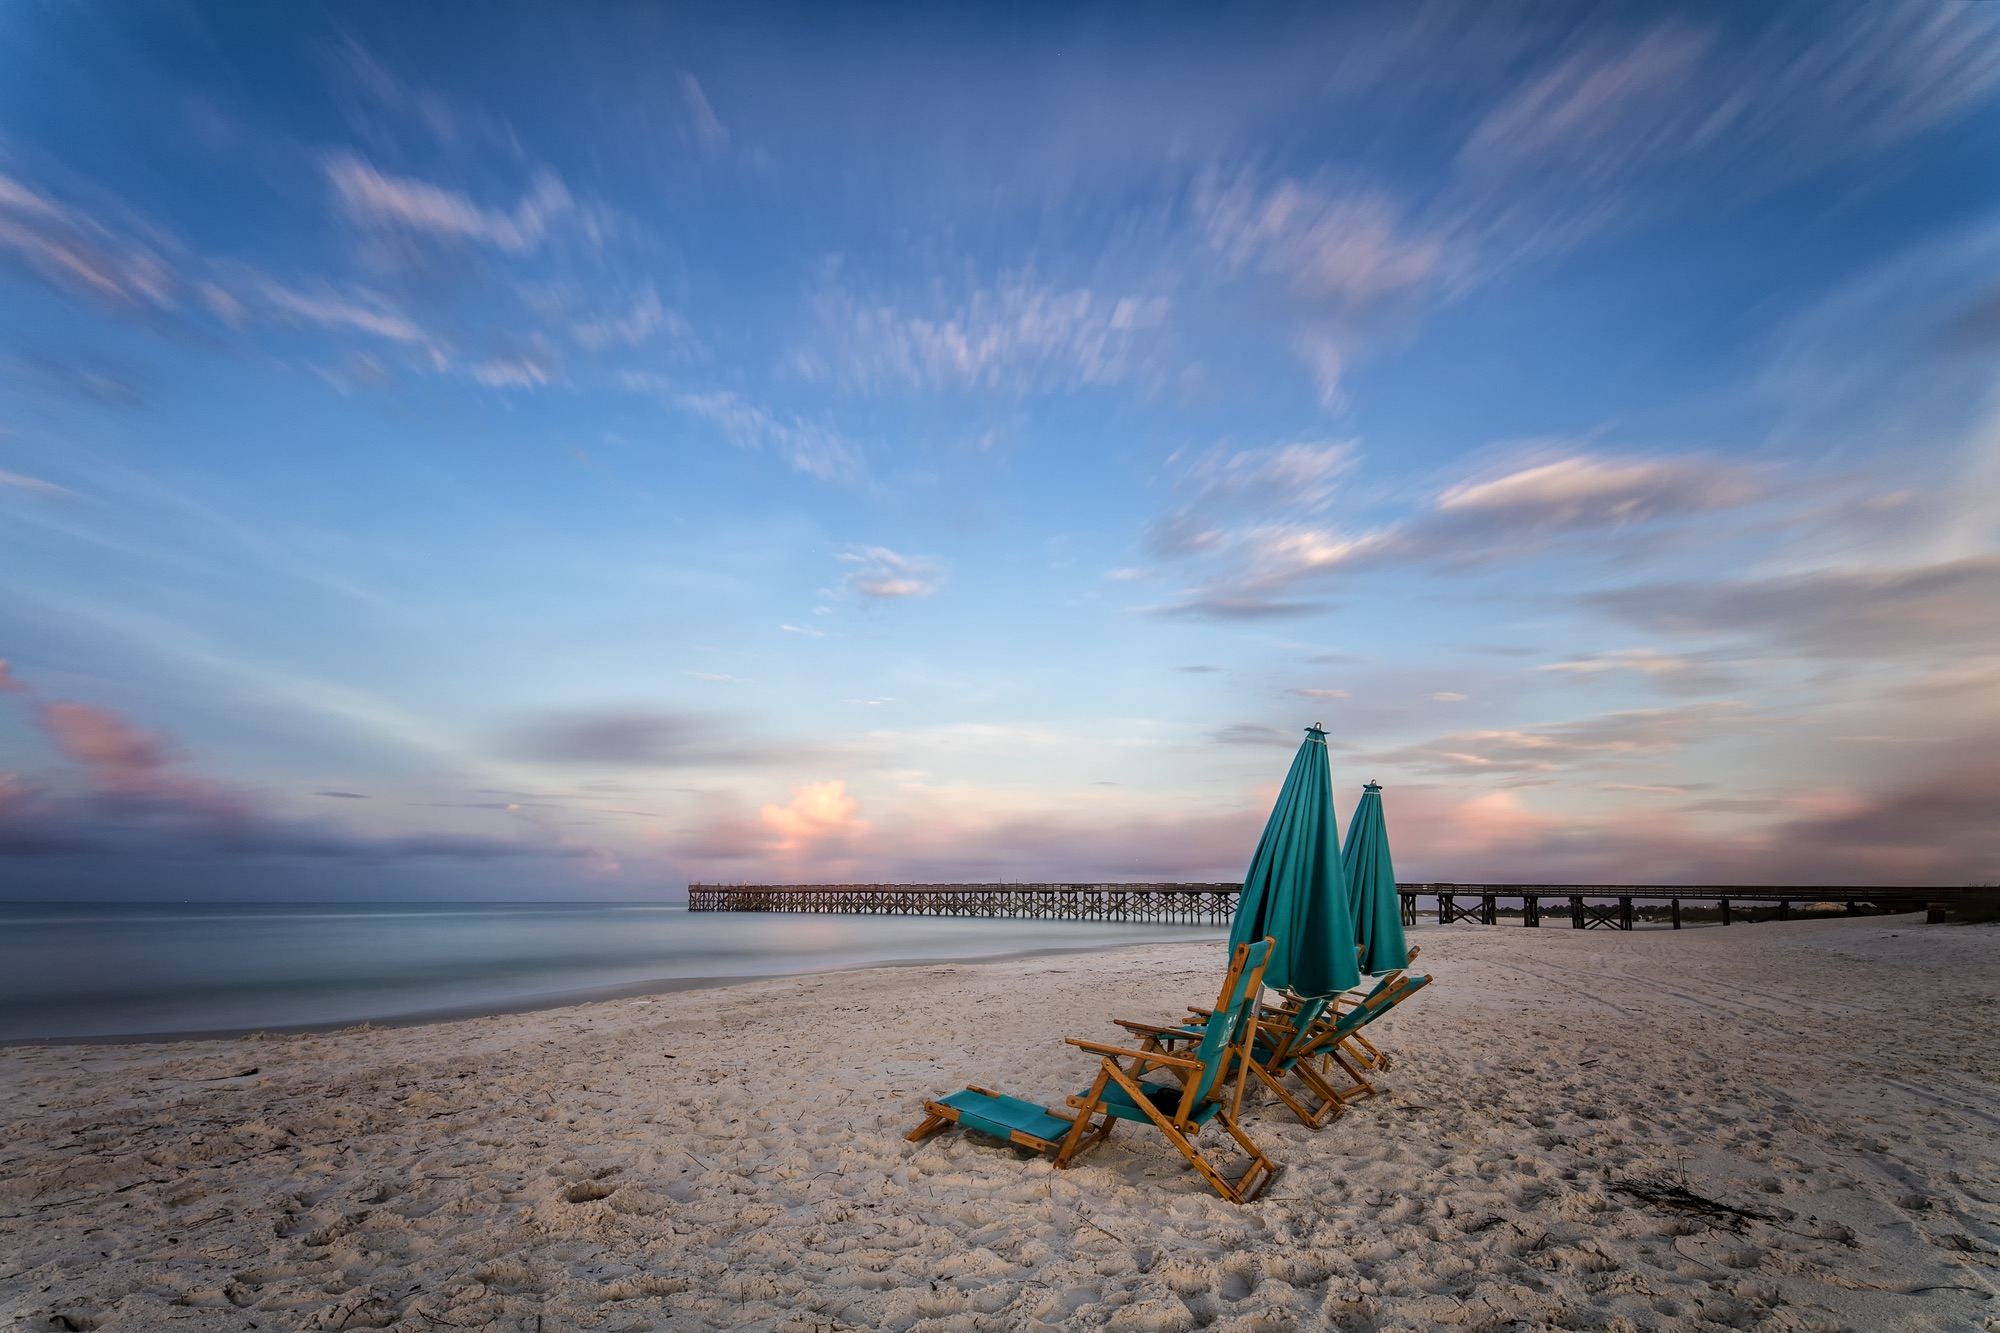 Photo by Bill Fauth Mexico Beach 2016 Photo Contest